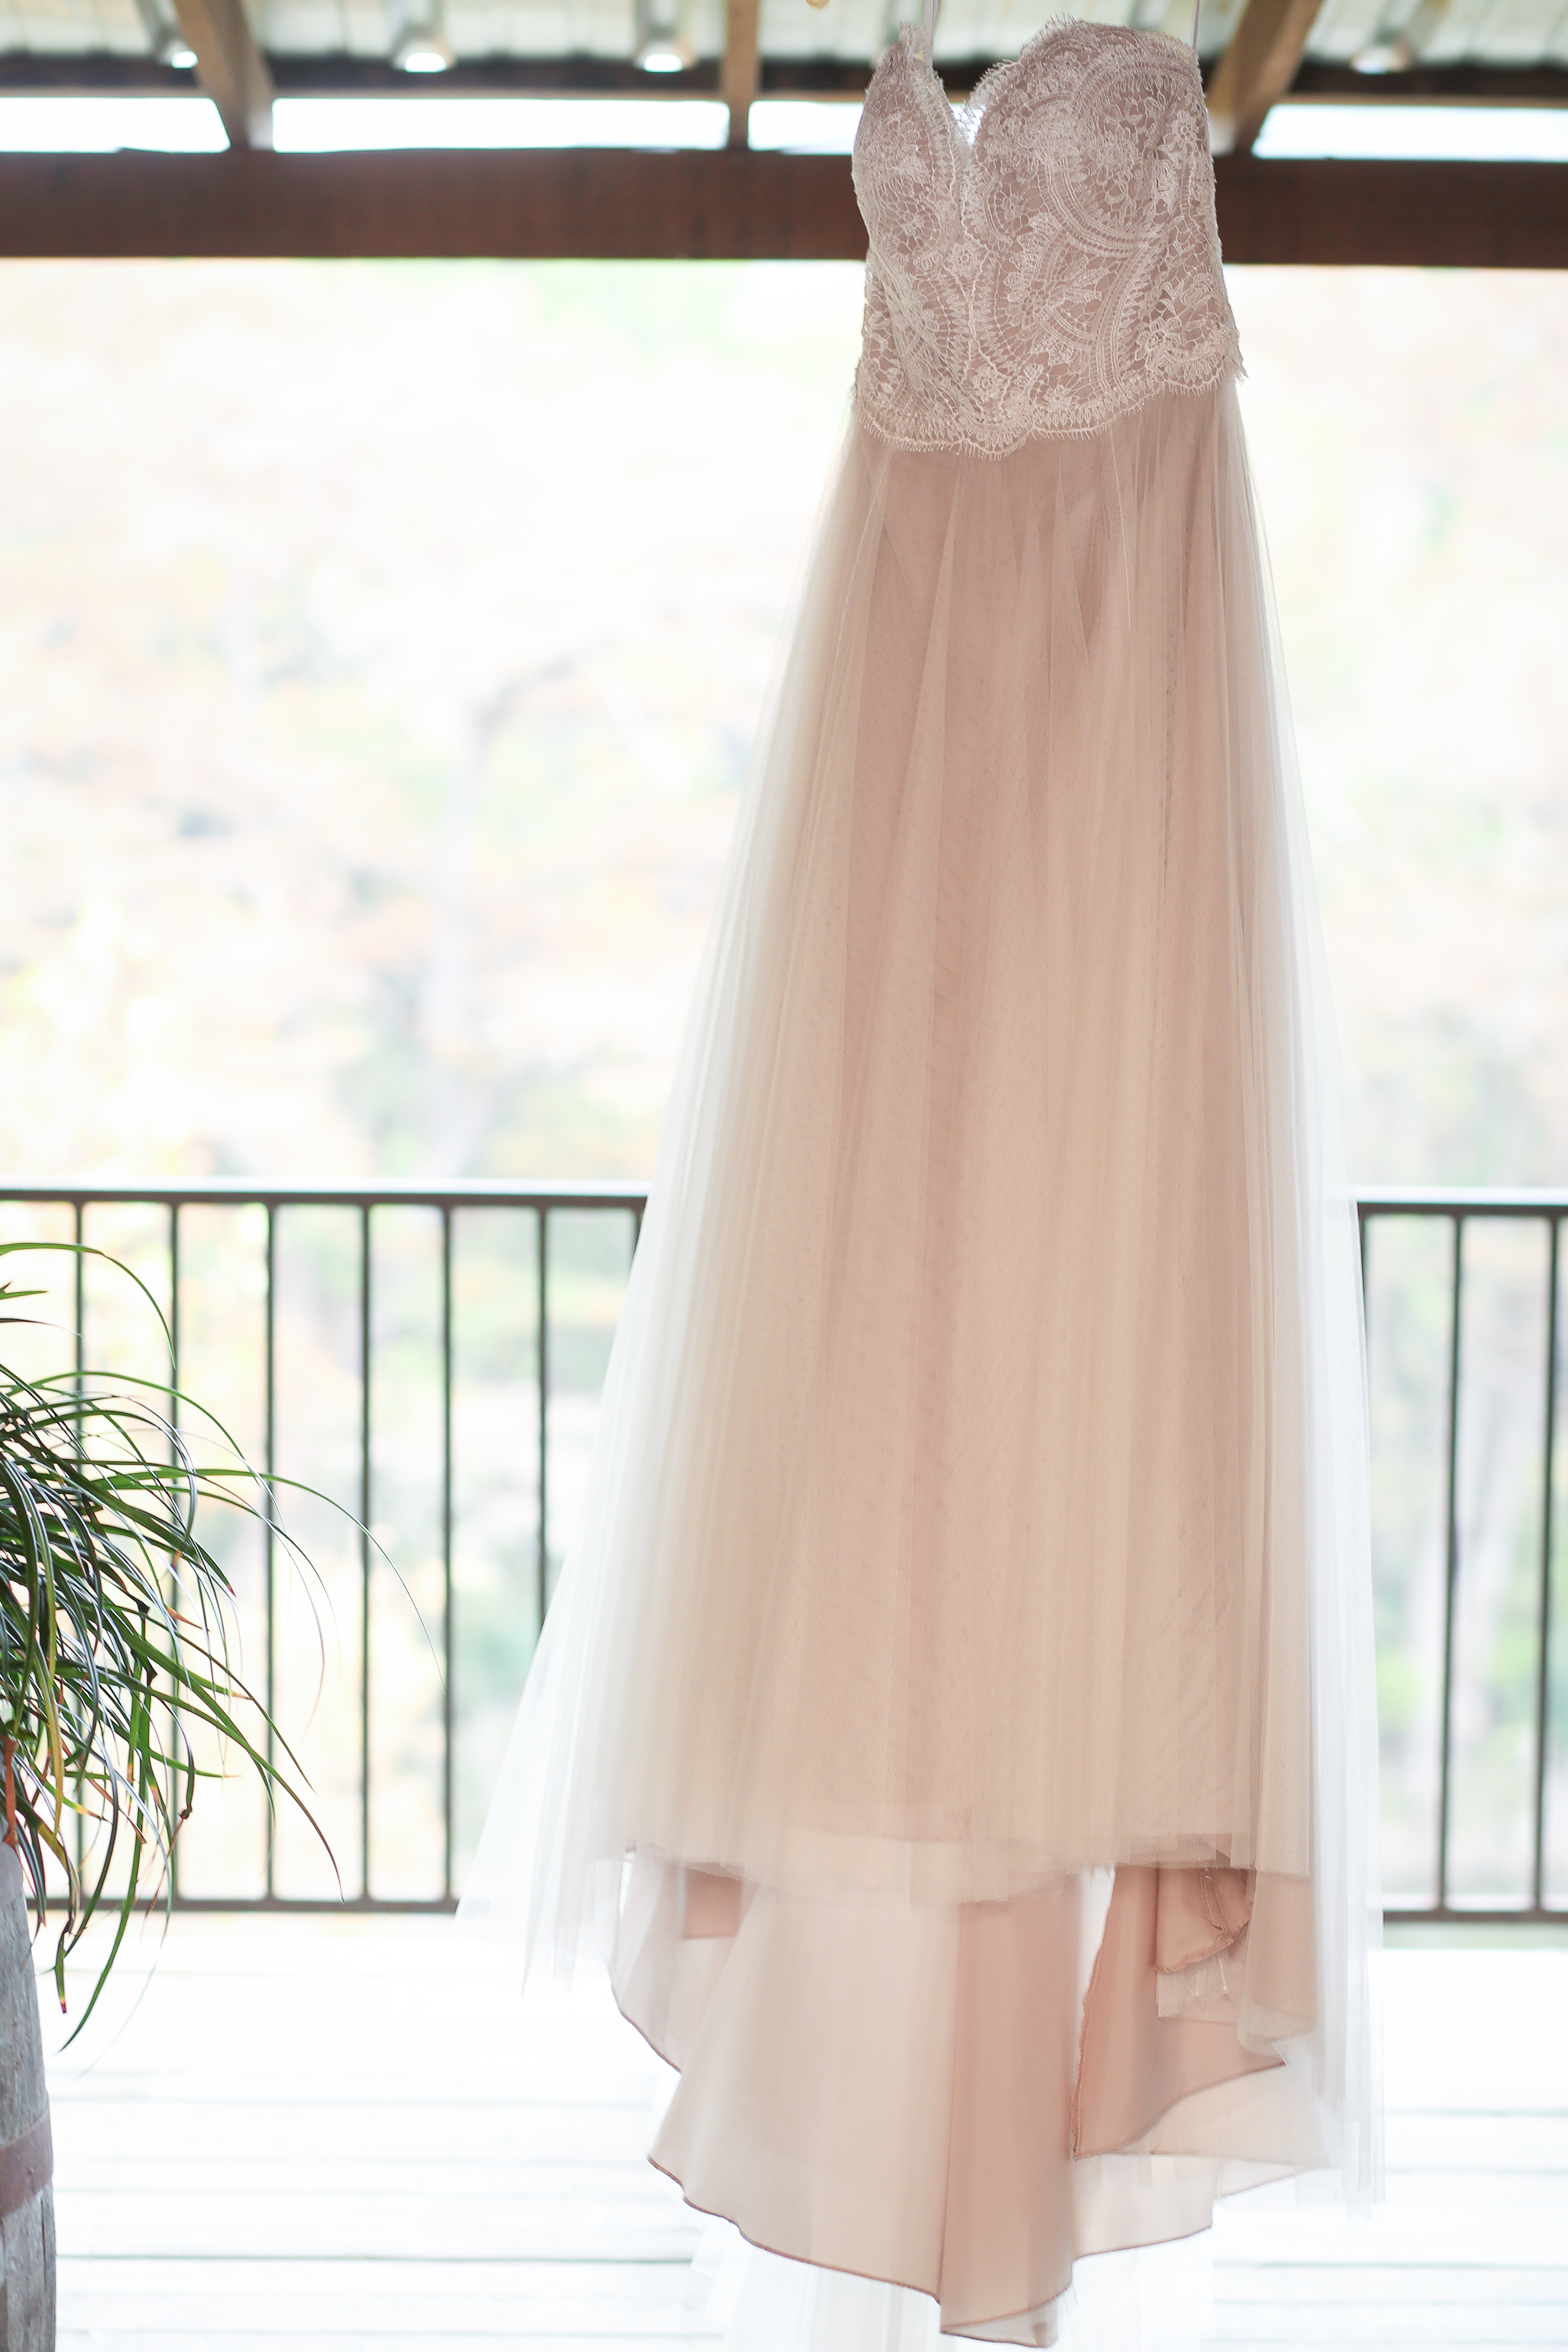 Beautiful Fall Wedding in Hill Country - Brittany McBrayer Photography